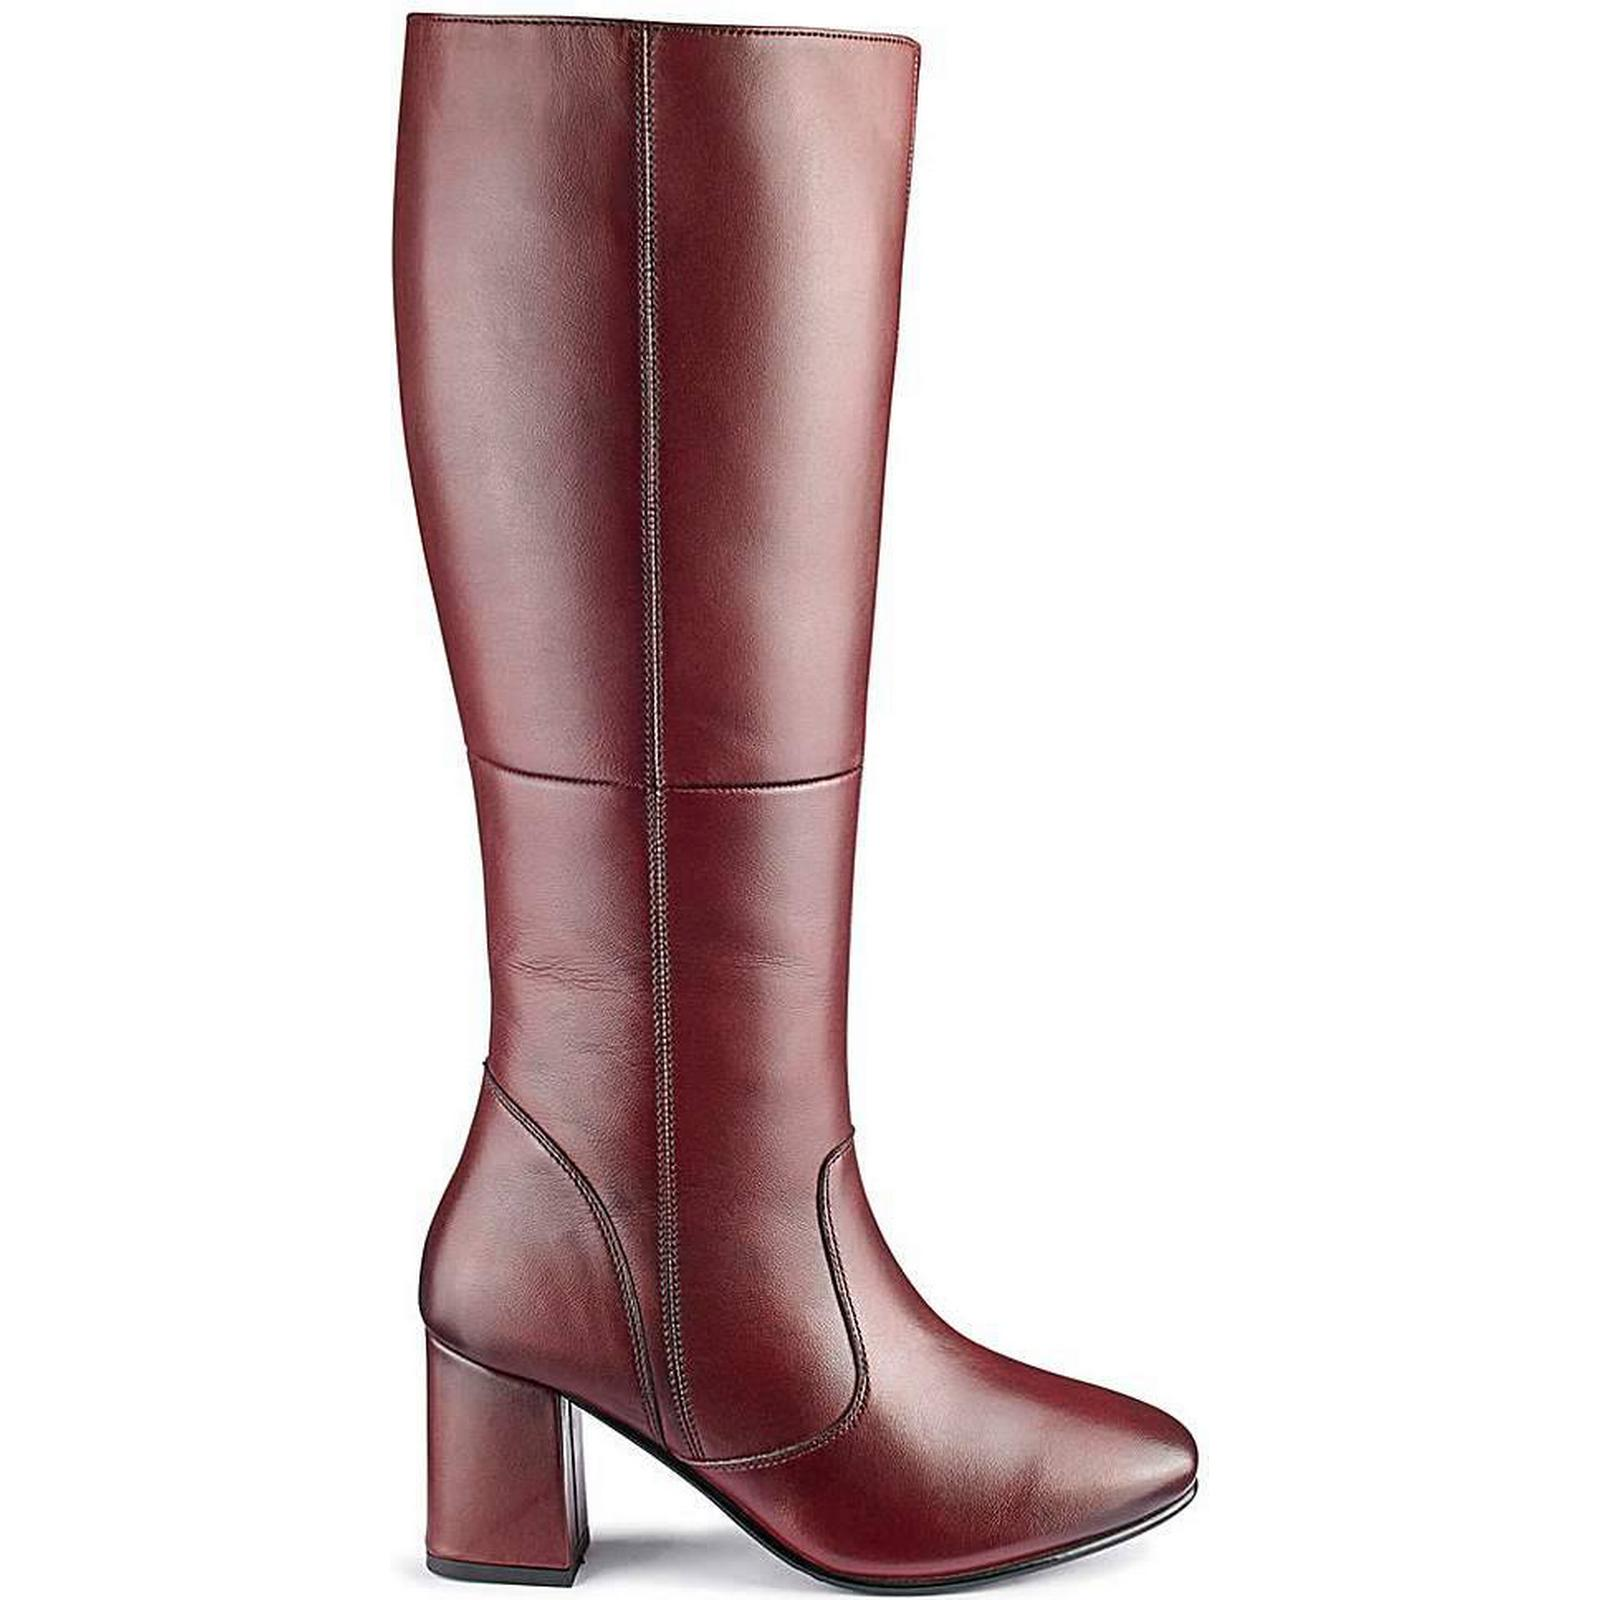 Heavenly Soles Leather Curvy Boots EEE Fit Curvy Leather Plus Calf beb930